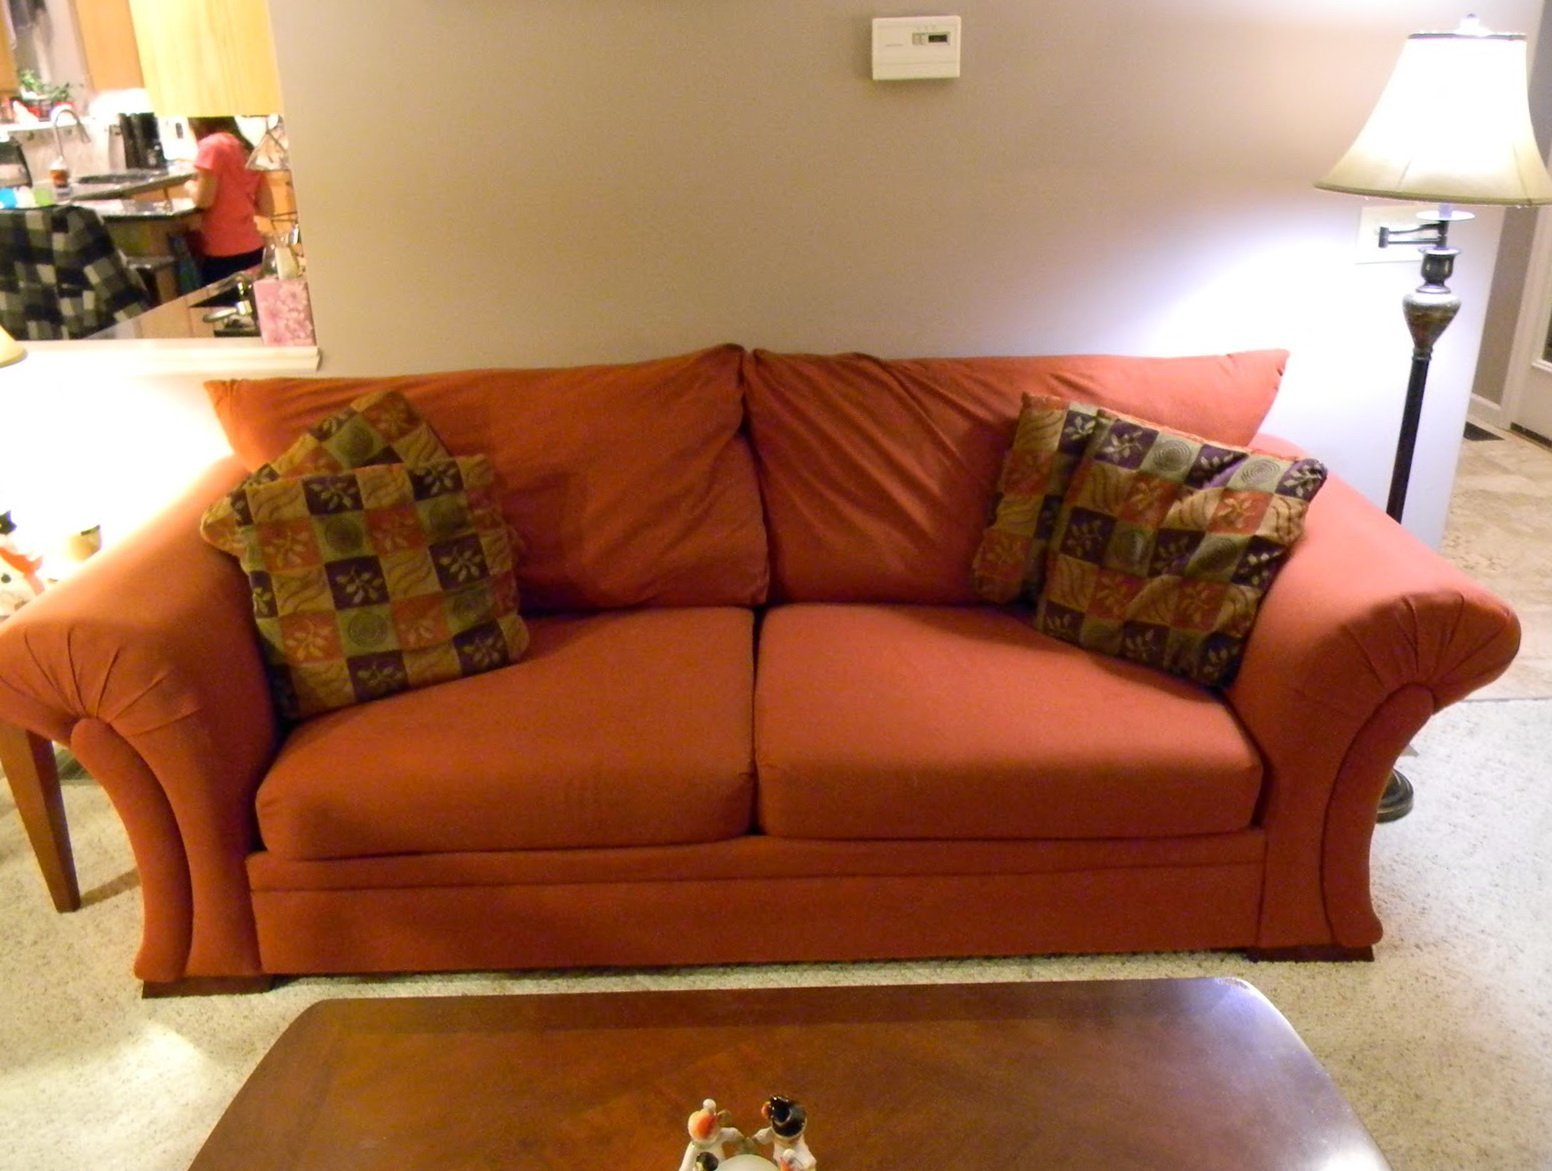 target sofa loveseat covers dog bed australia sectional slipcovers - home furniture design